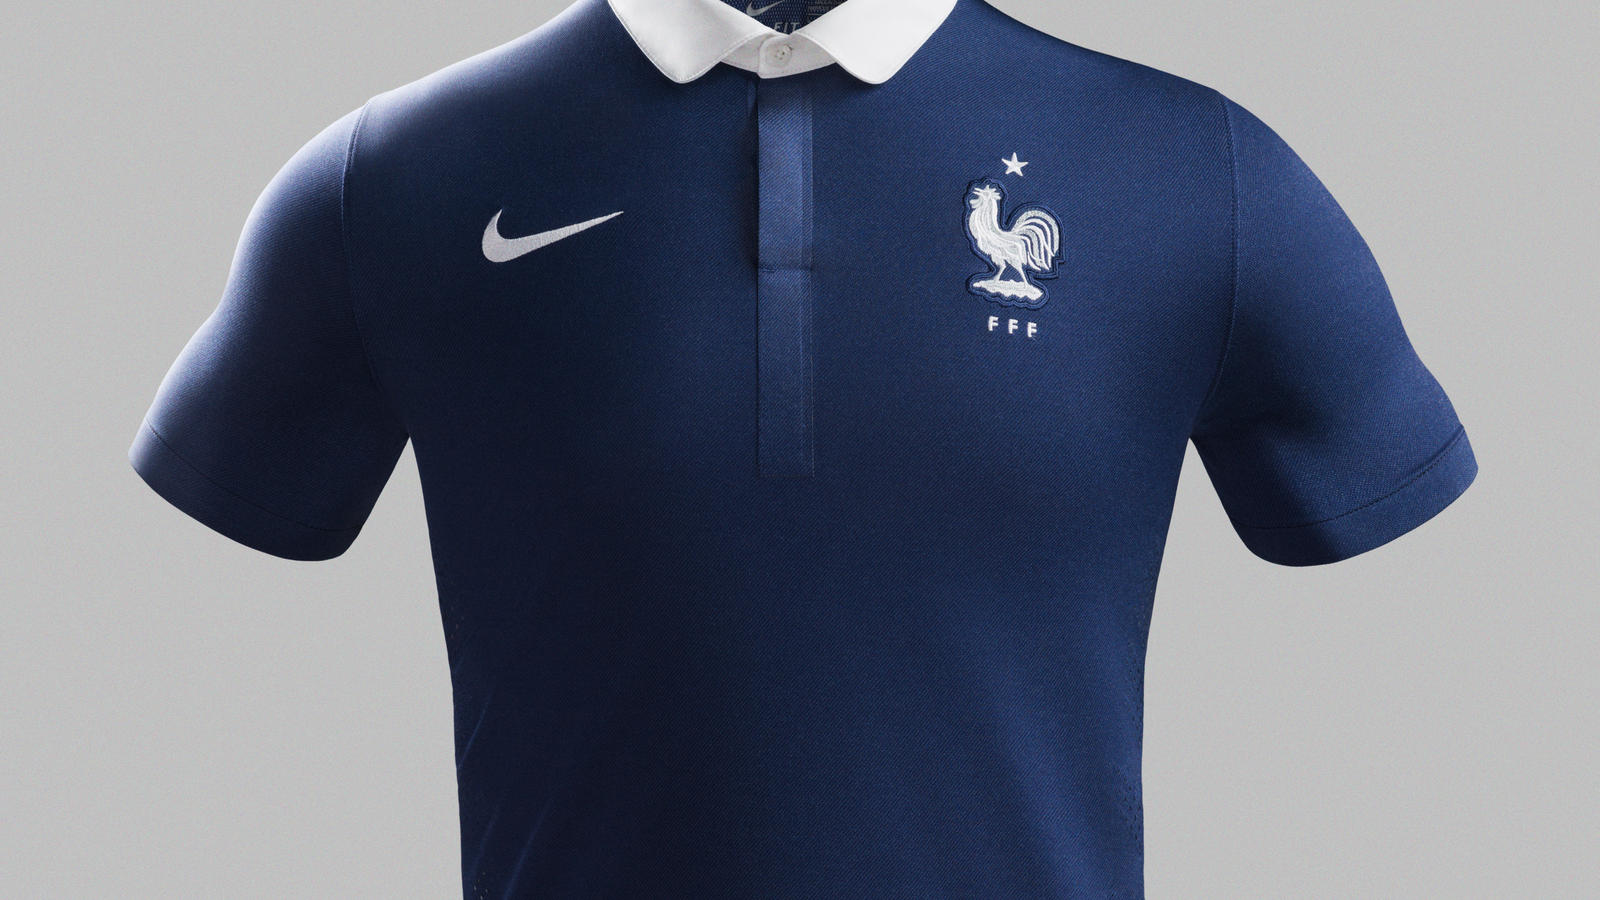 new styles 1db3c a63d7 Nike Unveils 2014 France Kit - Nike News